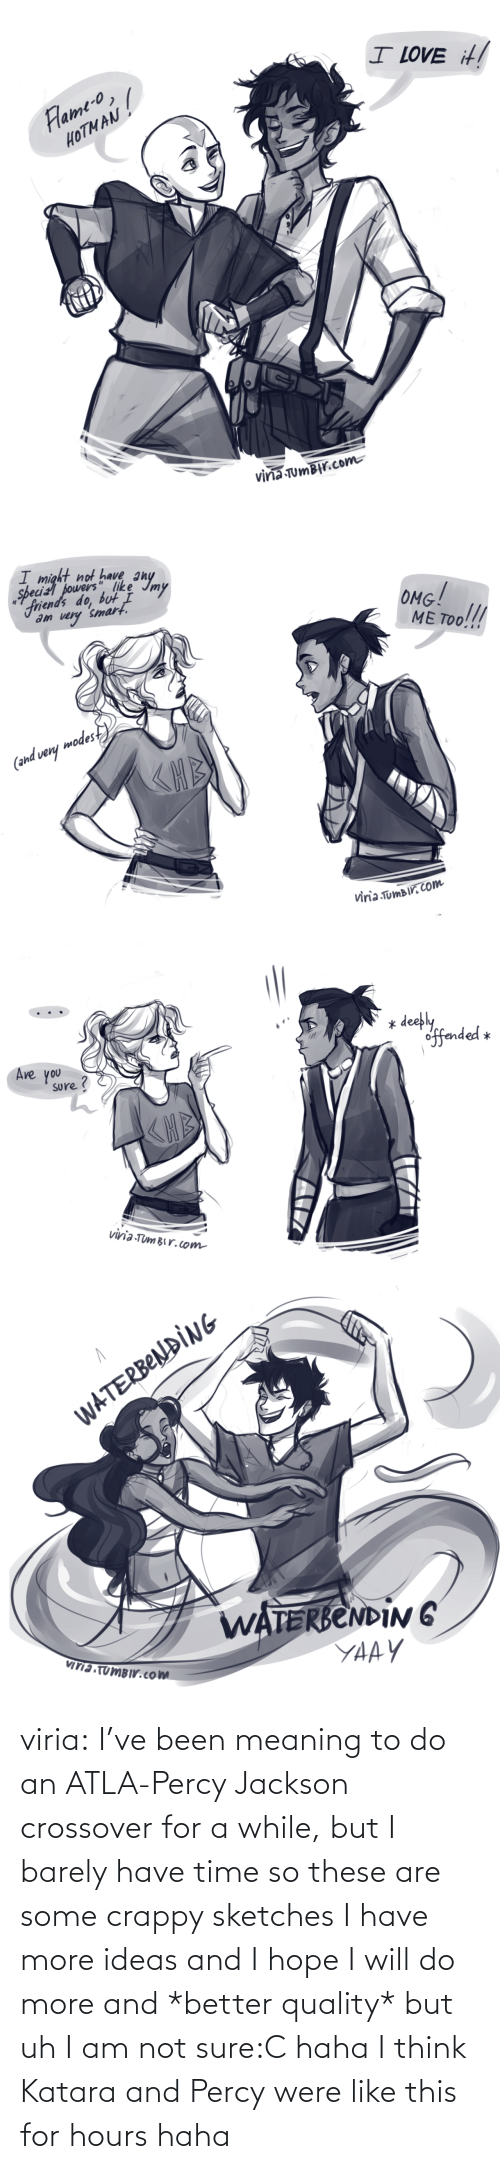 Hope: viria:  I've been meaning to do an ATLA-Percy Jackson crossover for a while, but I barely have time so these are some crappy sketches I have more ideas and I hope I will do more and *better quality* but uh I am not sure:C haha I think Katara and Percy were like this for hours haha